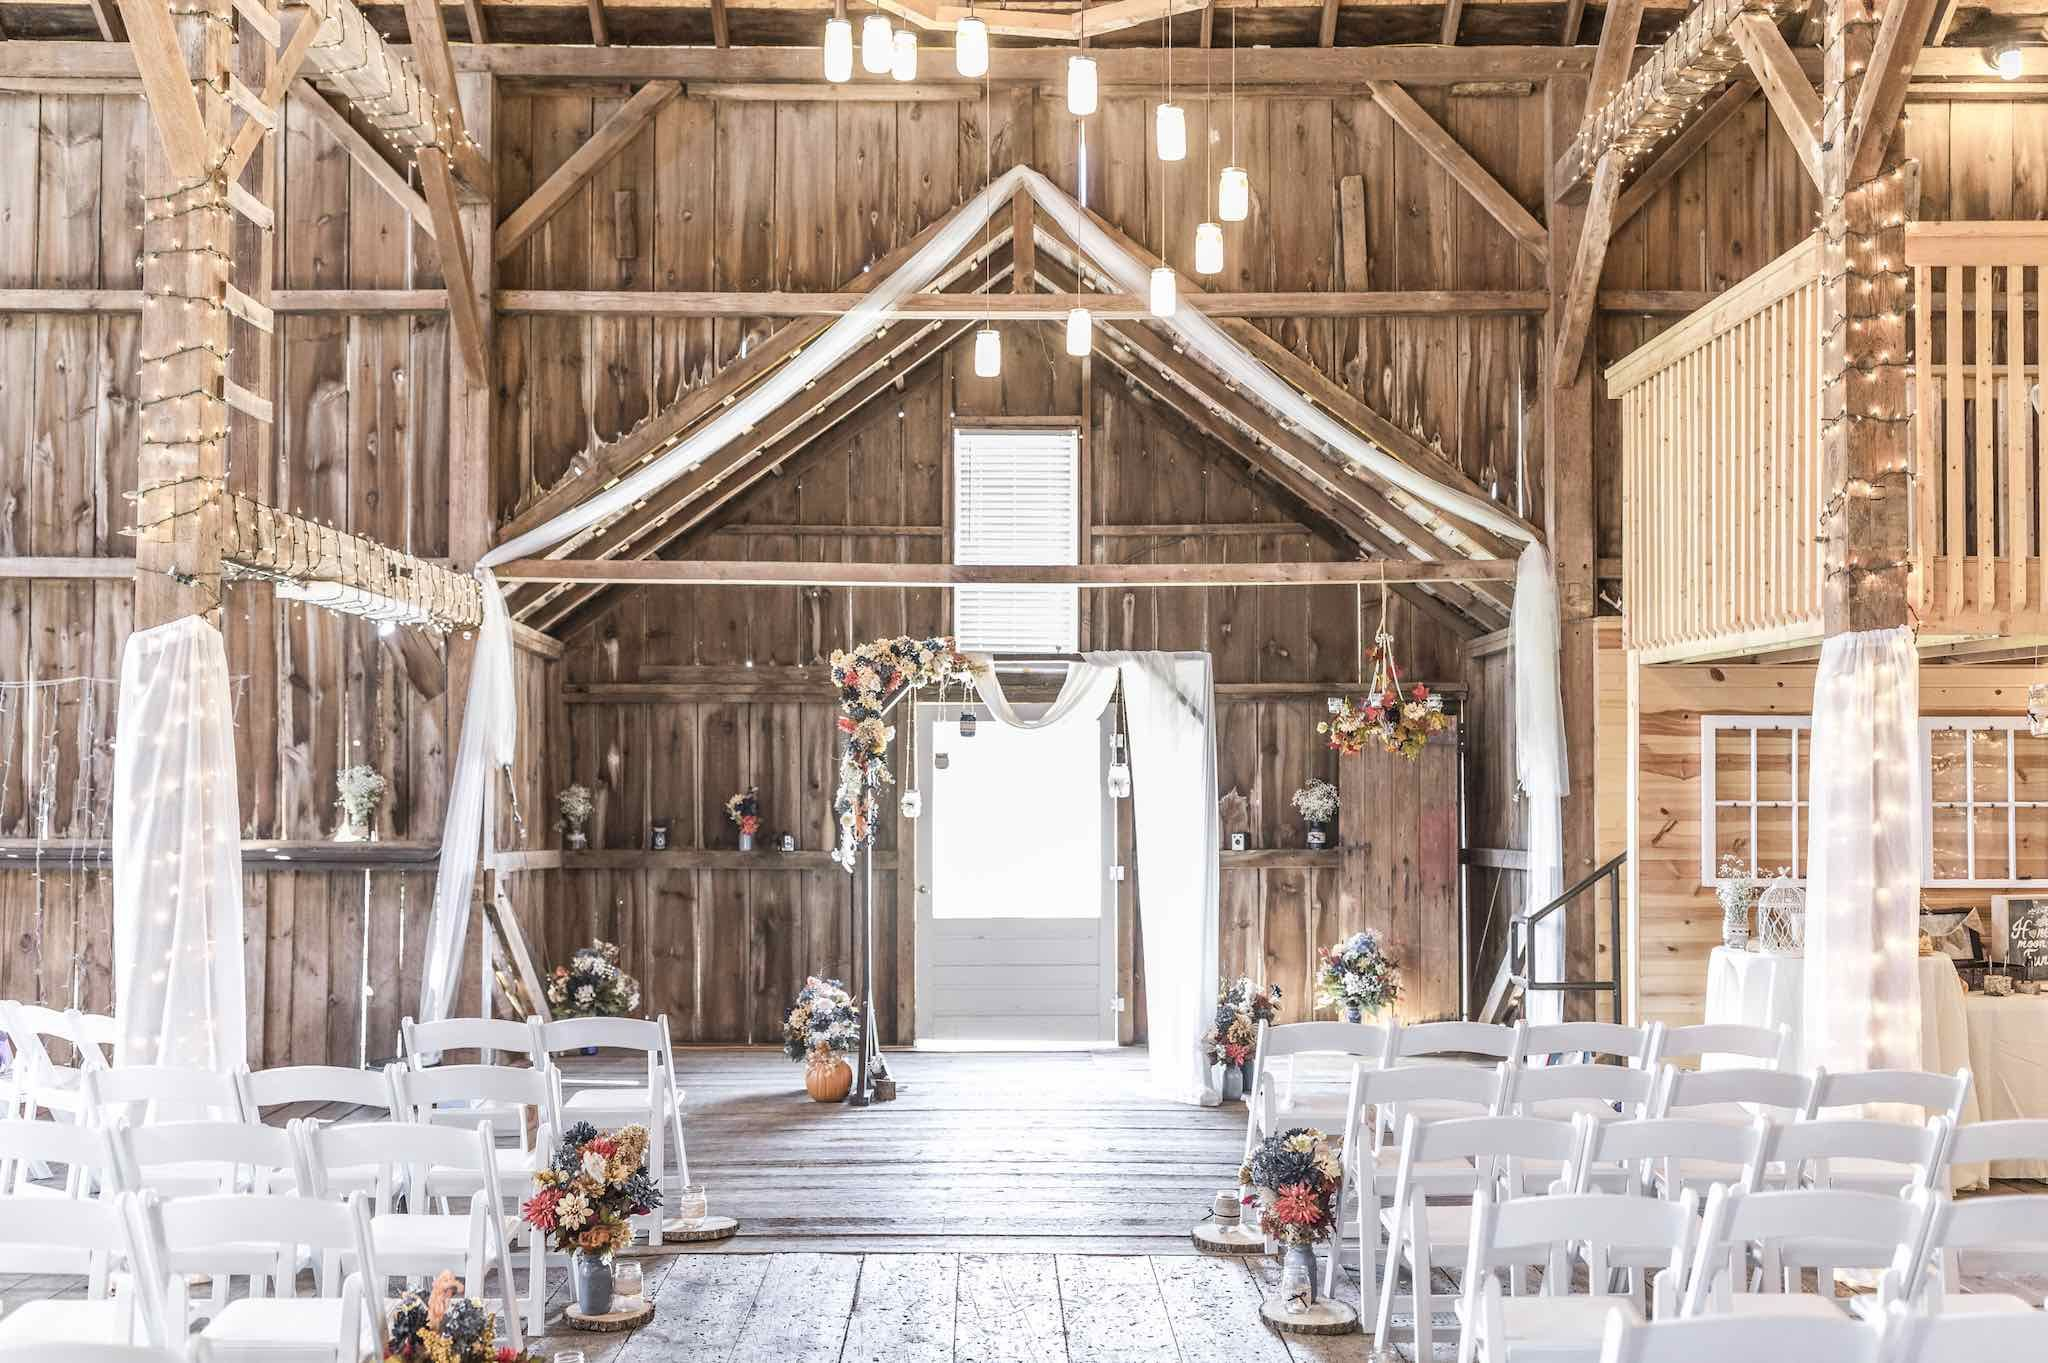 The Brauer Barn - Winnebago, IL | Rustic wedding venues ...